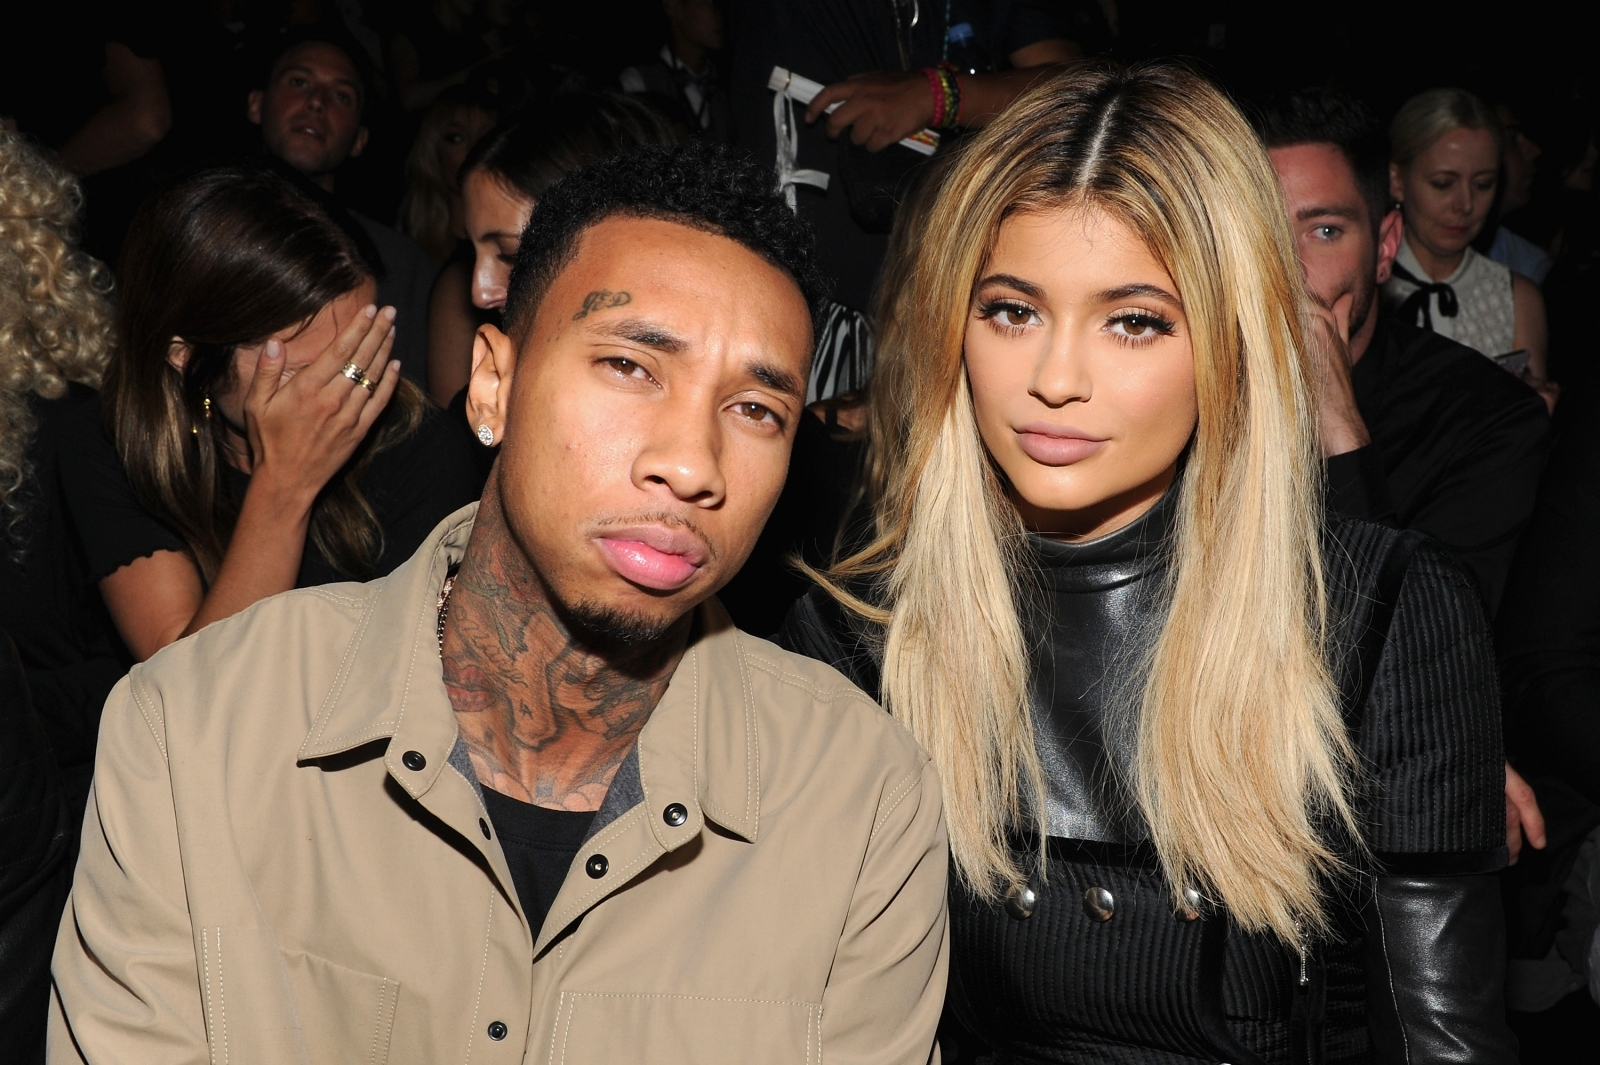 So This Is Why Kylie Jenner Won't Confirm Her Pregnancy